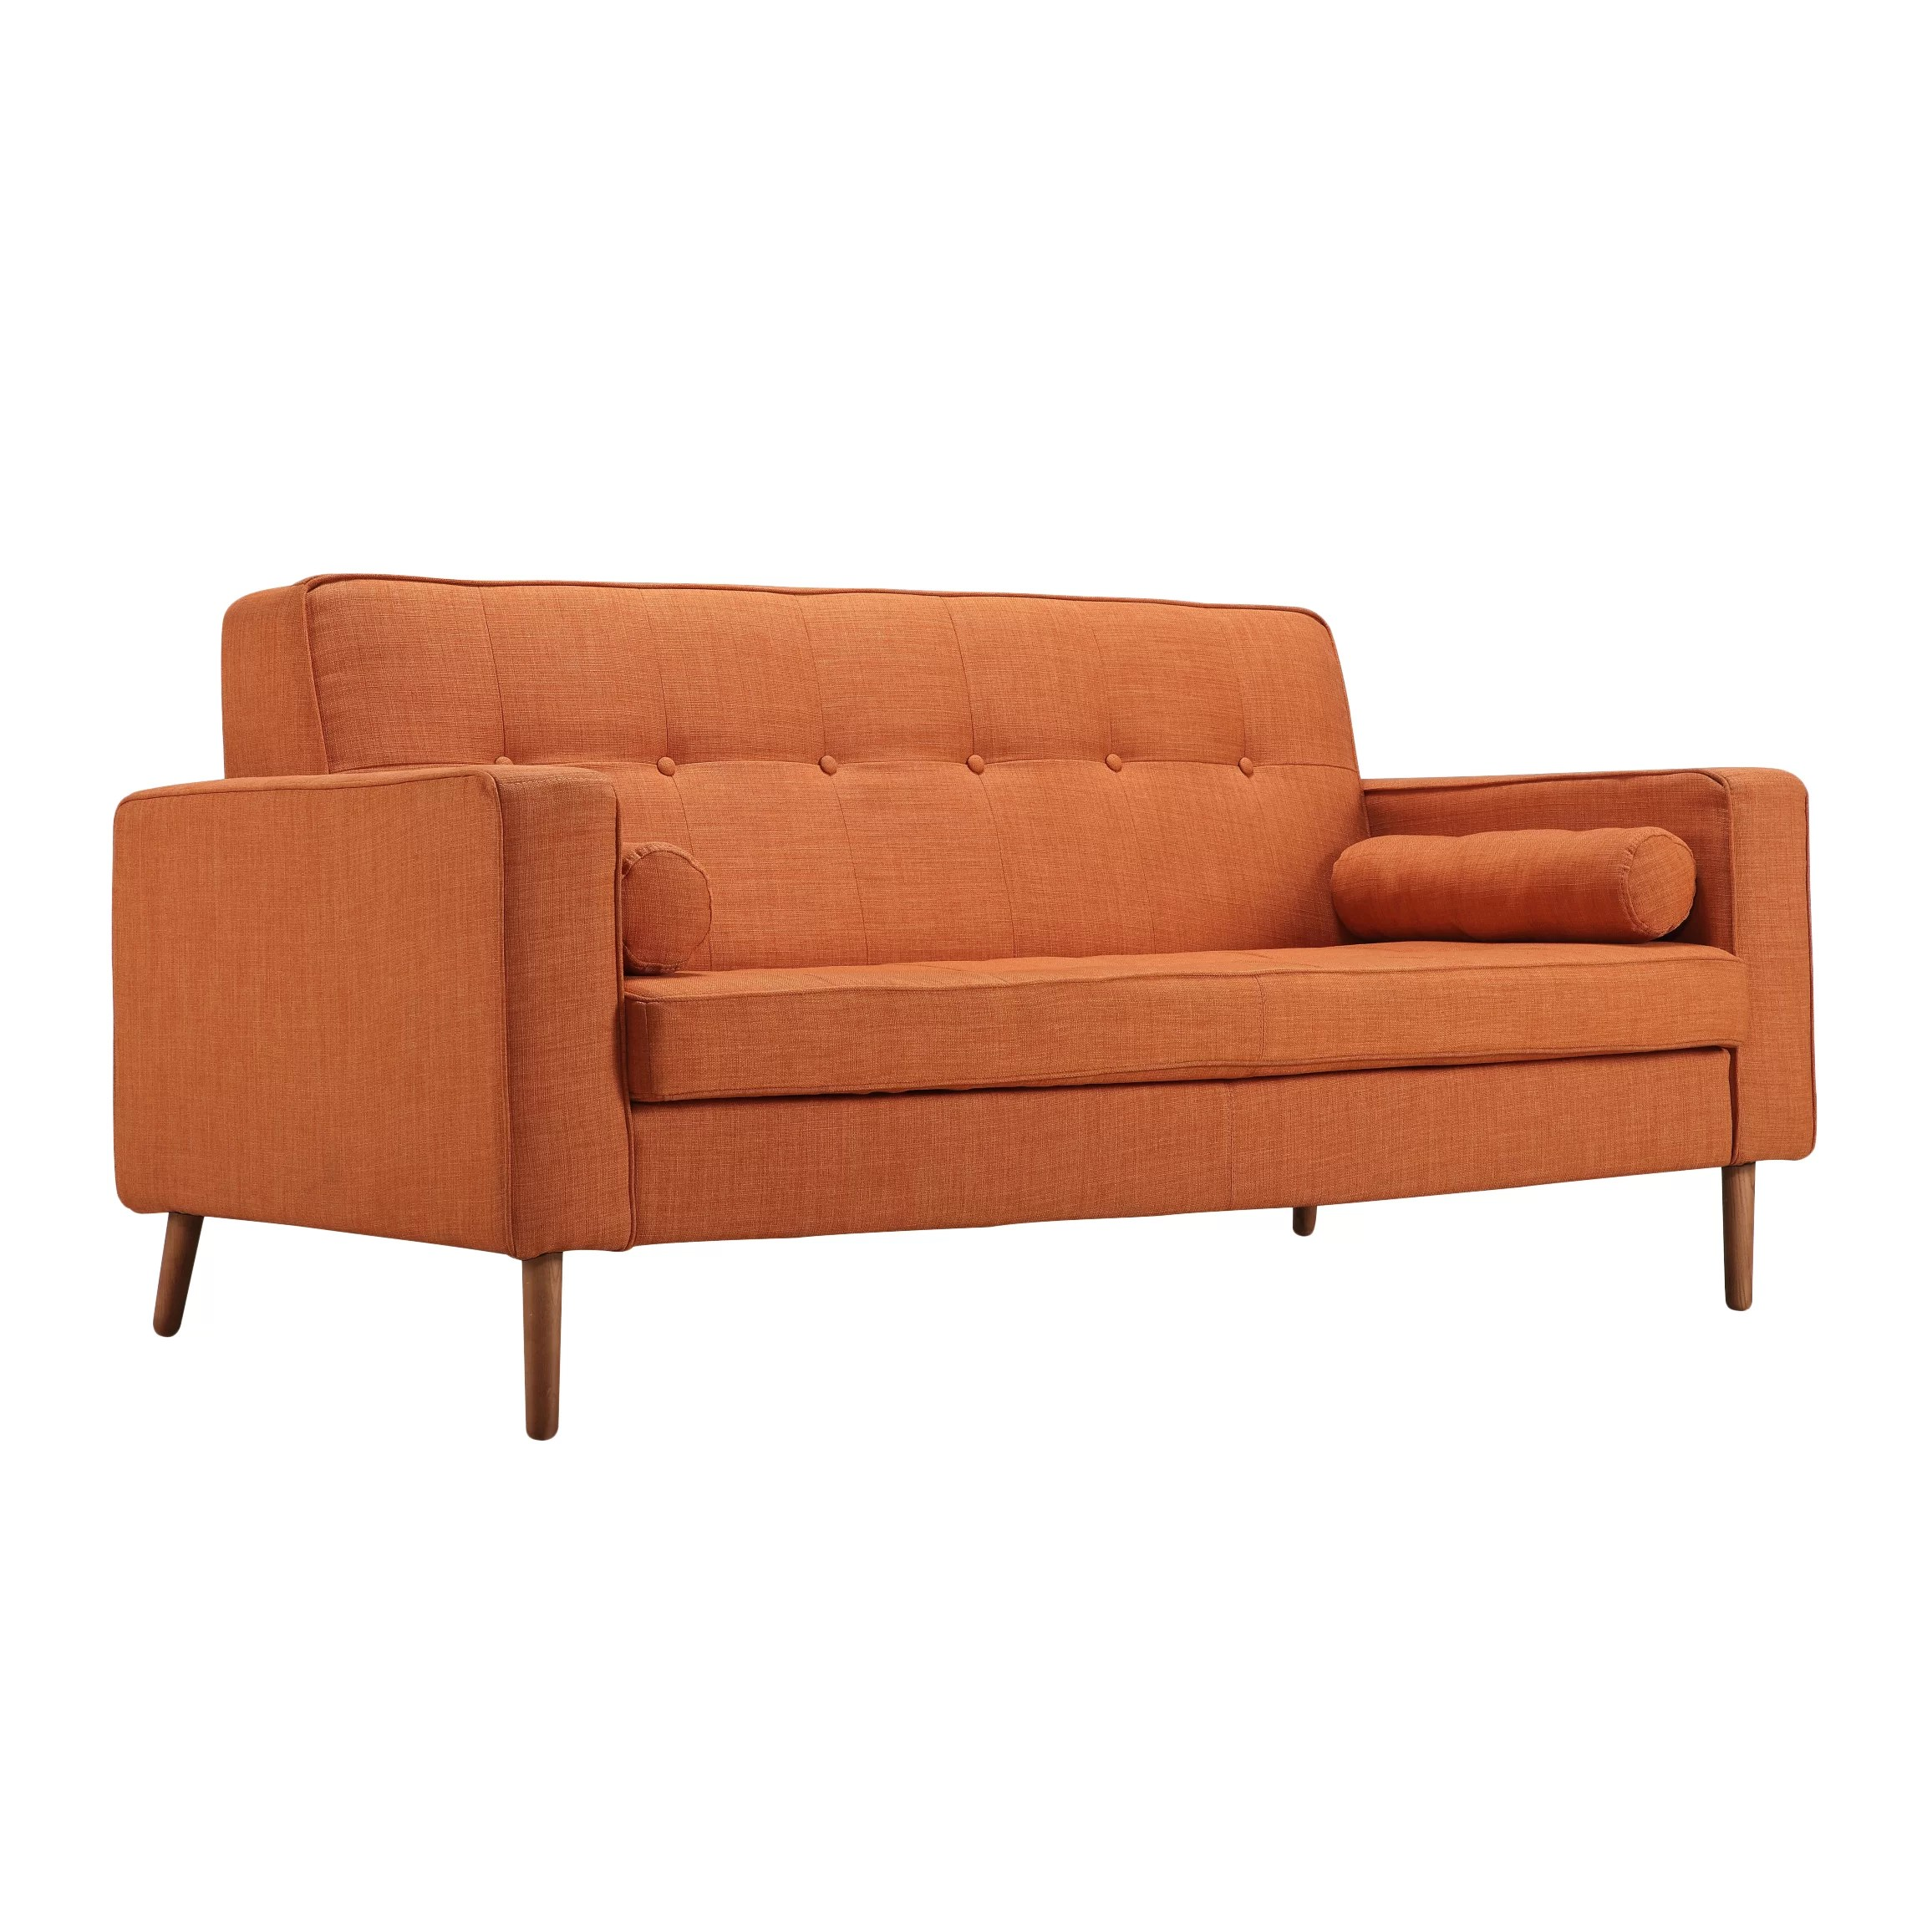 baxter sofa pull out bed canada ceets and reviews wayfair